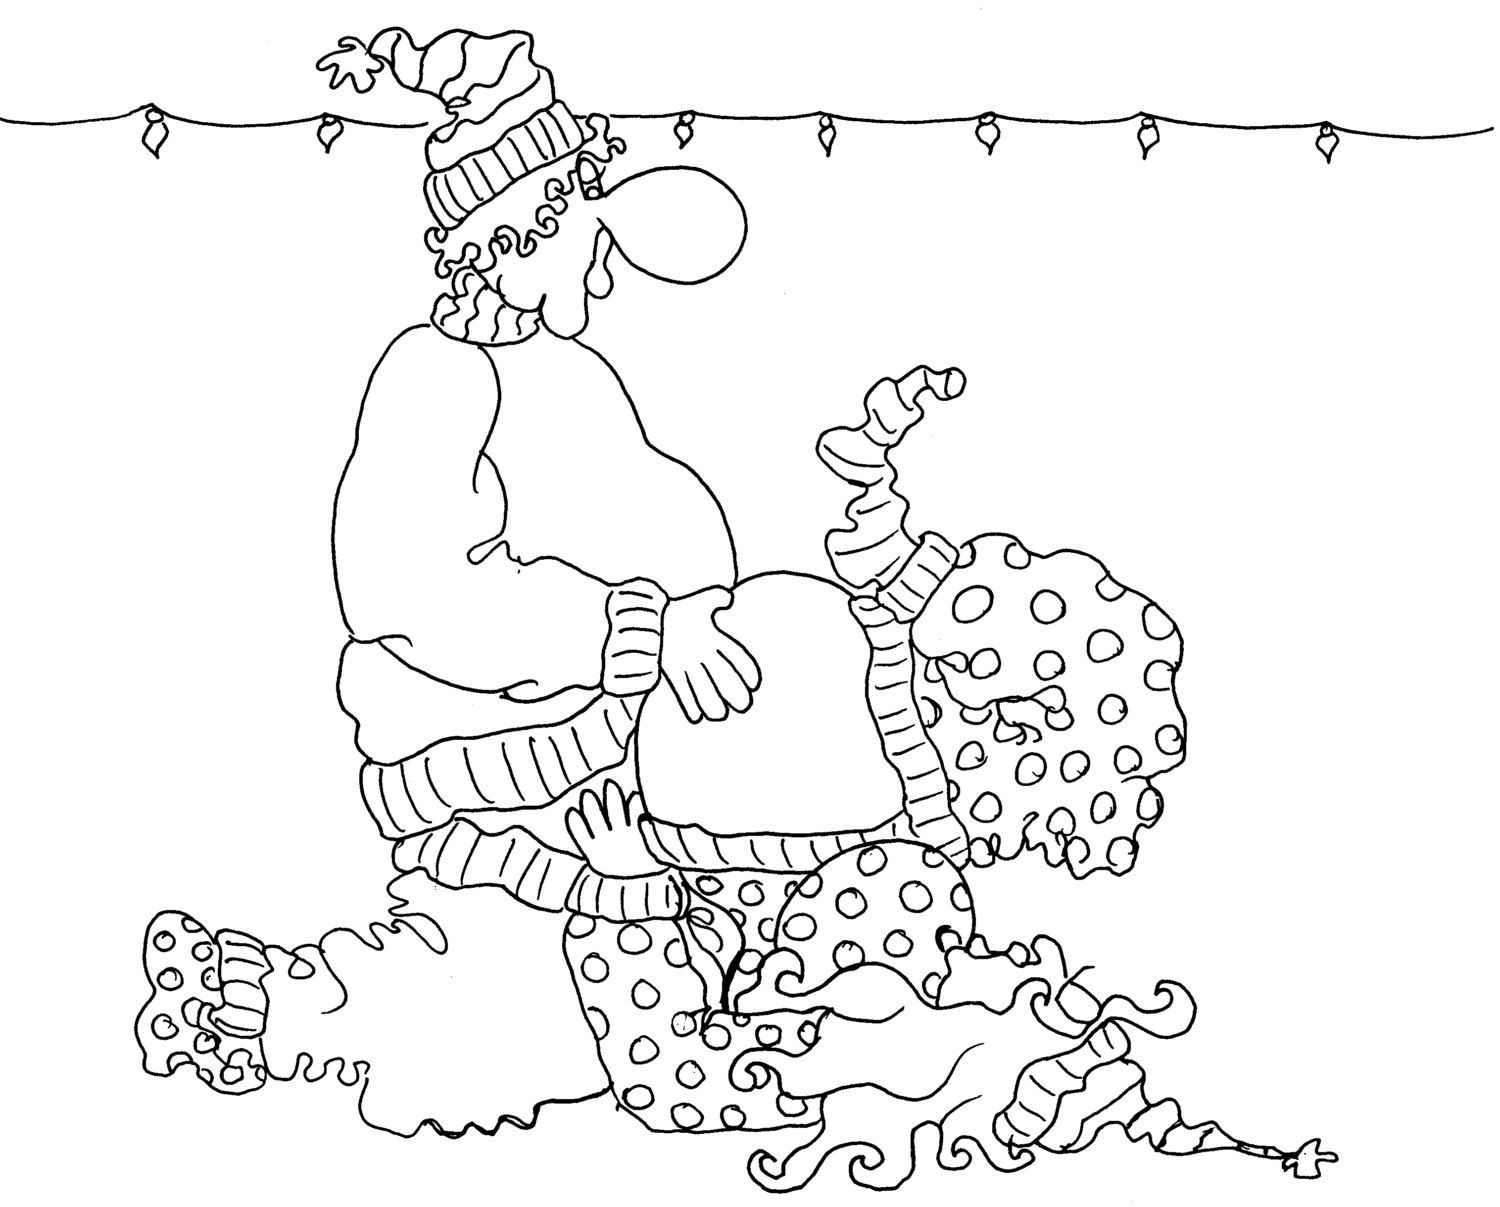 The G Force - a Kama Sutra Sexy Adult Coloring Page from the Chubby ...